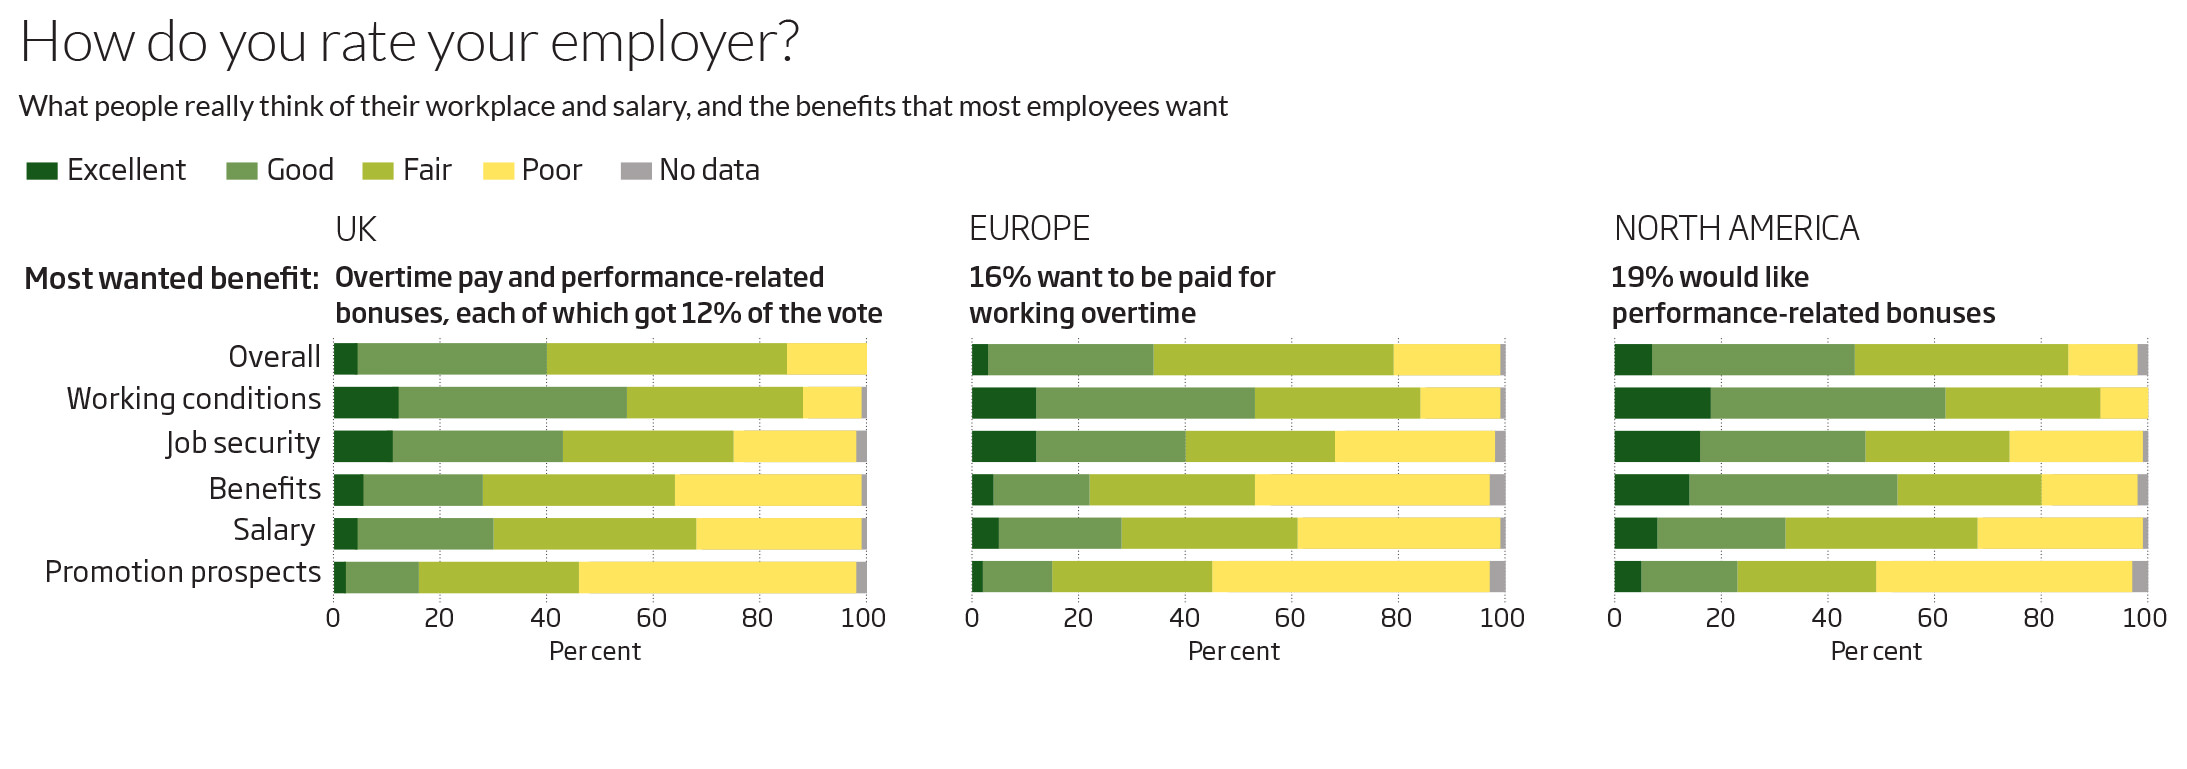 How do you rate your employer?